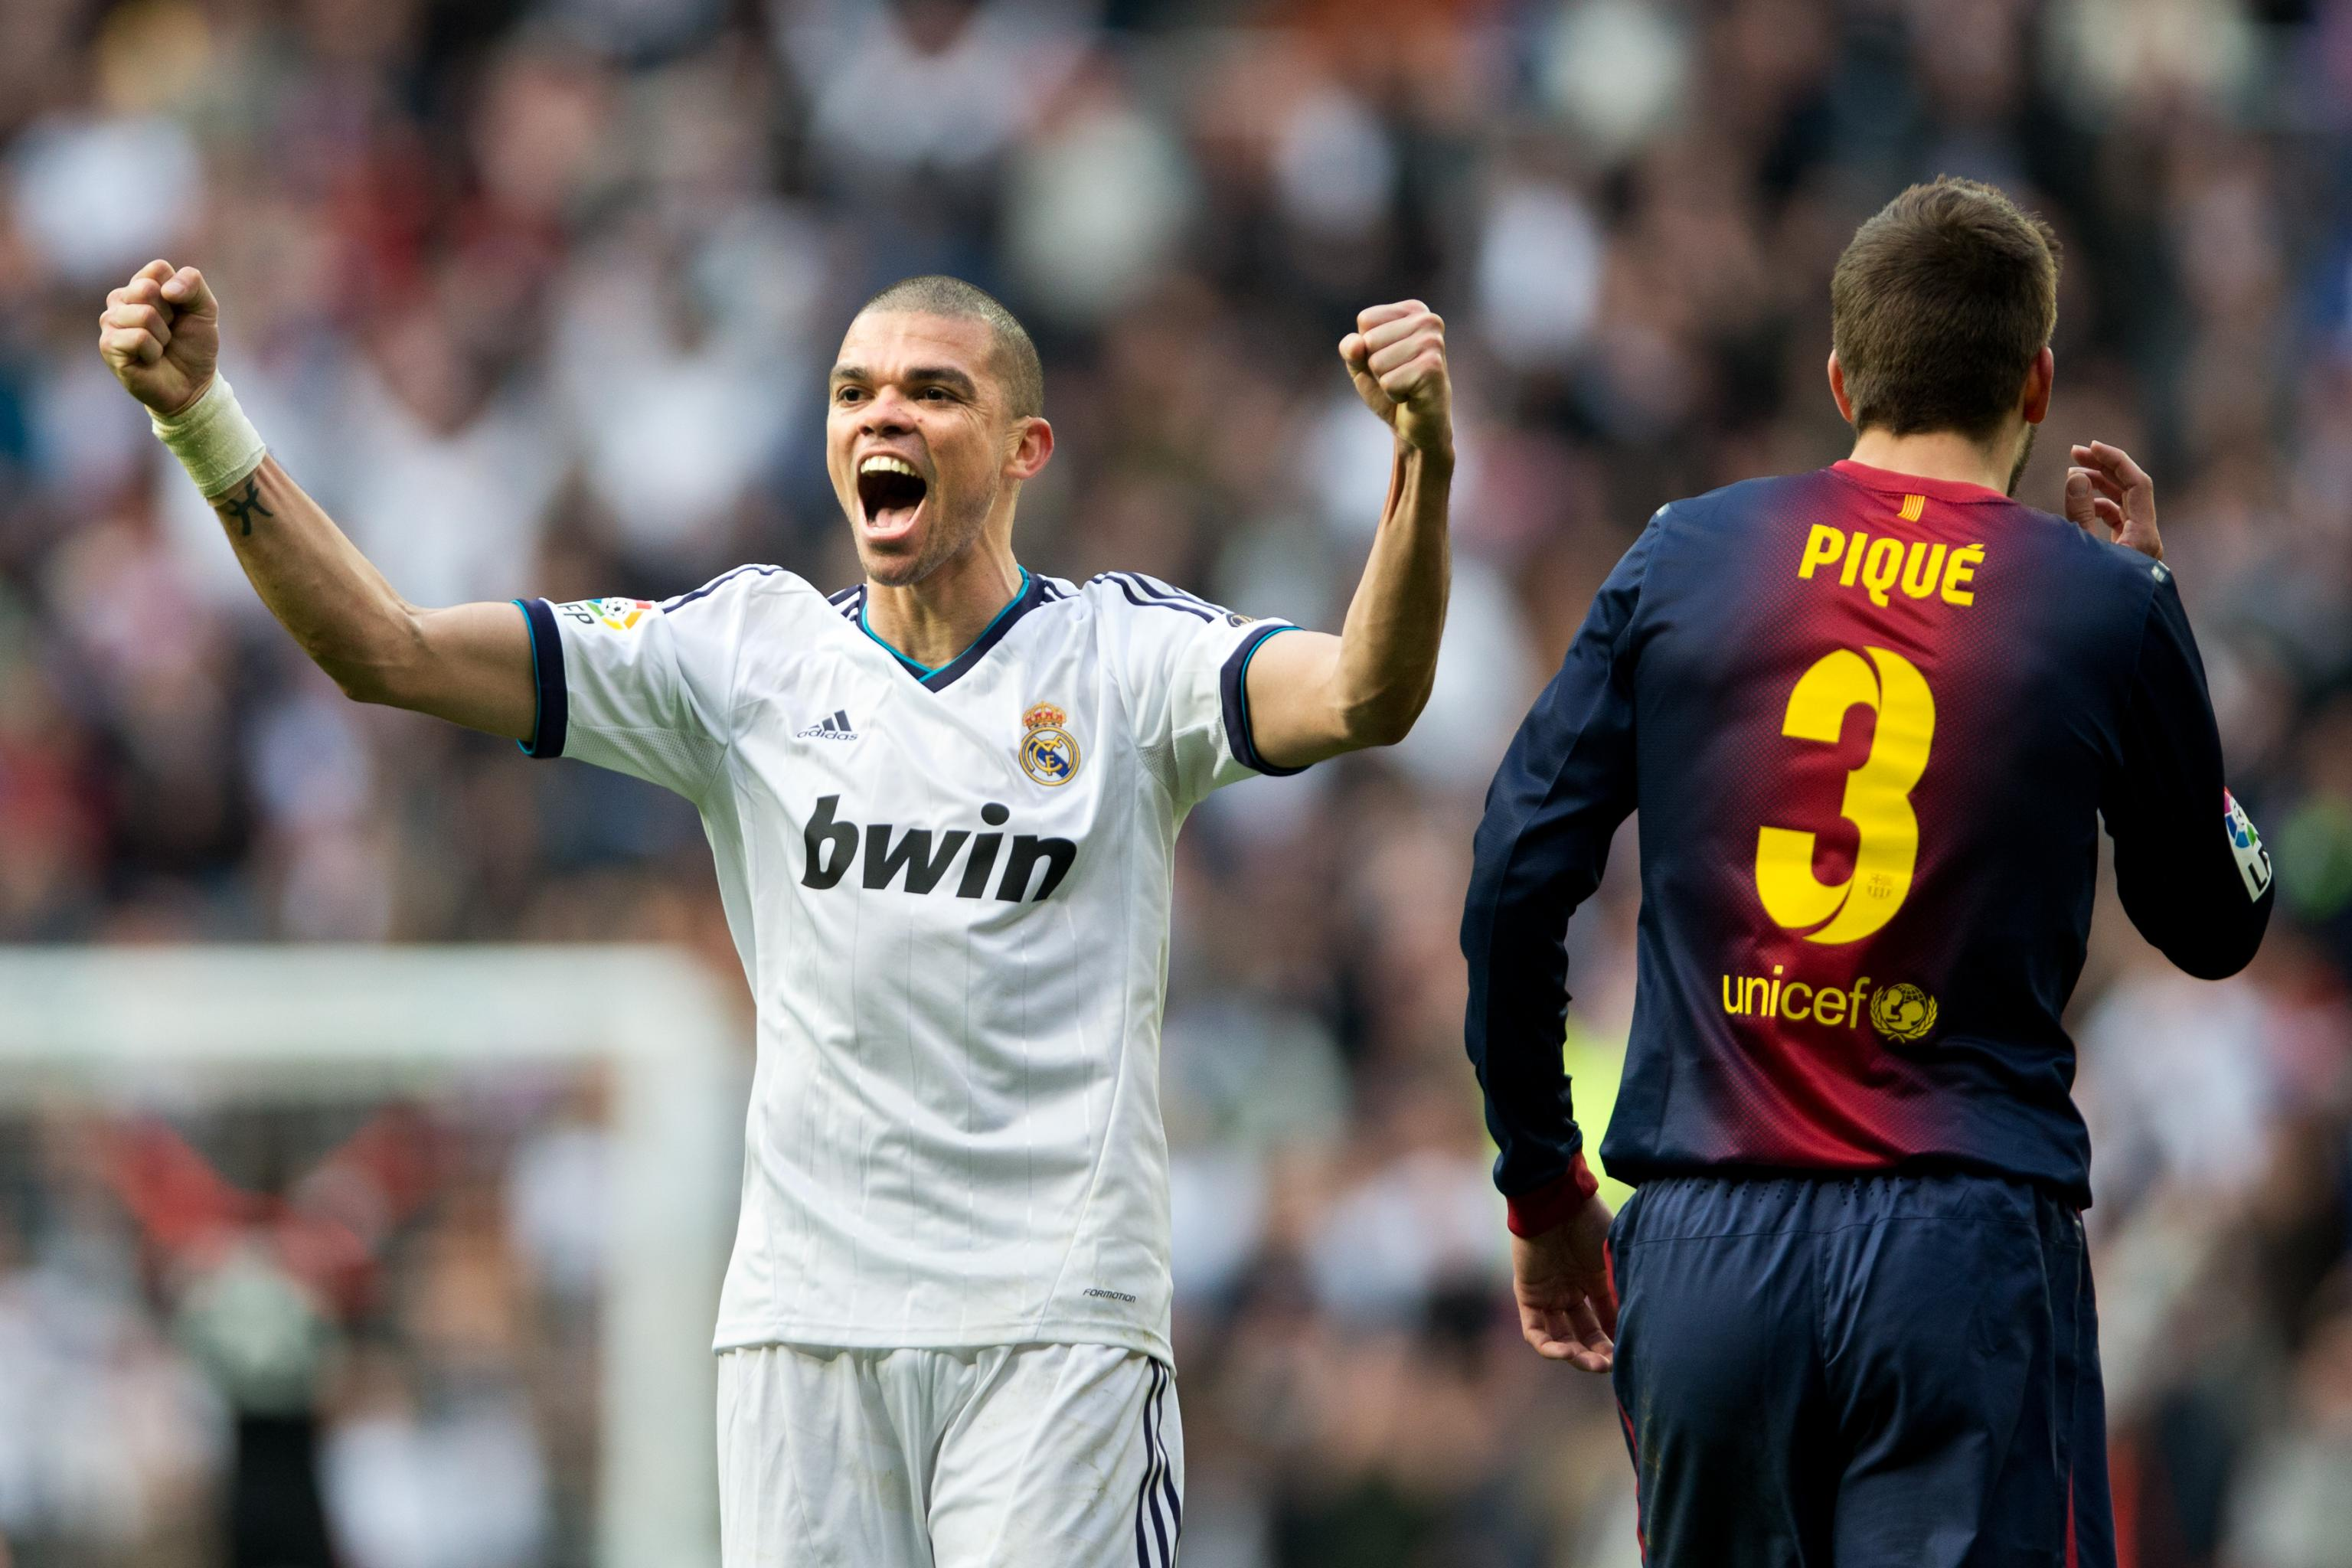 Betting real madrid barcelona types of horse betting explained photos